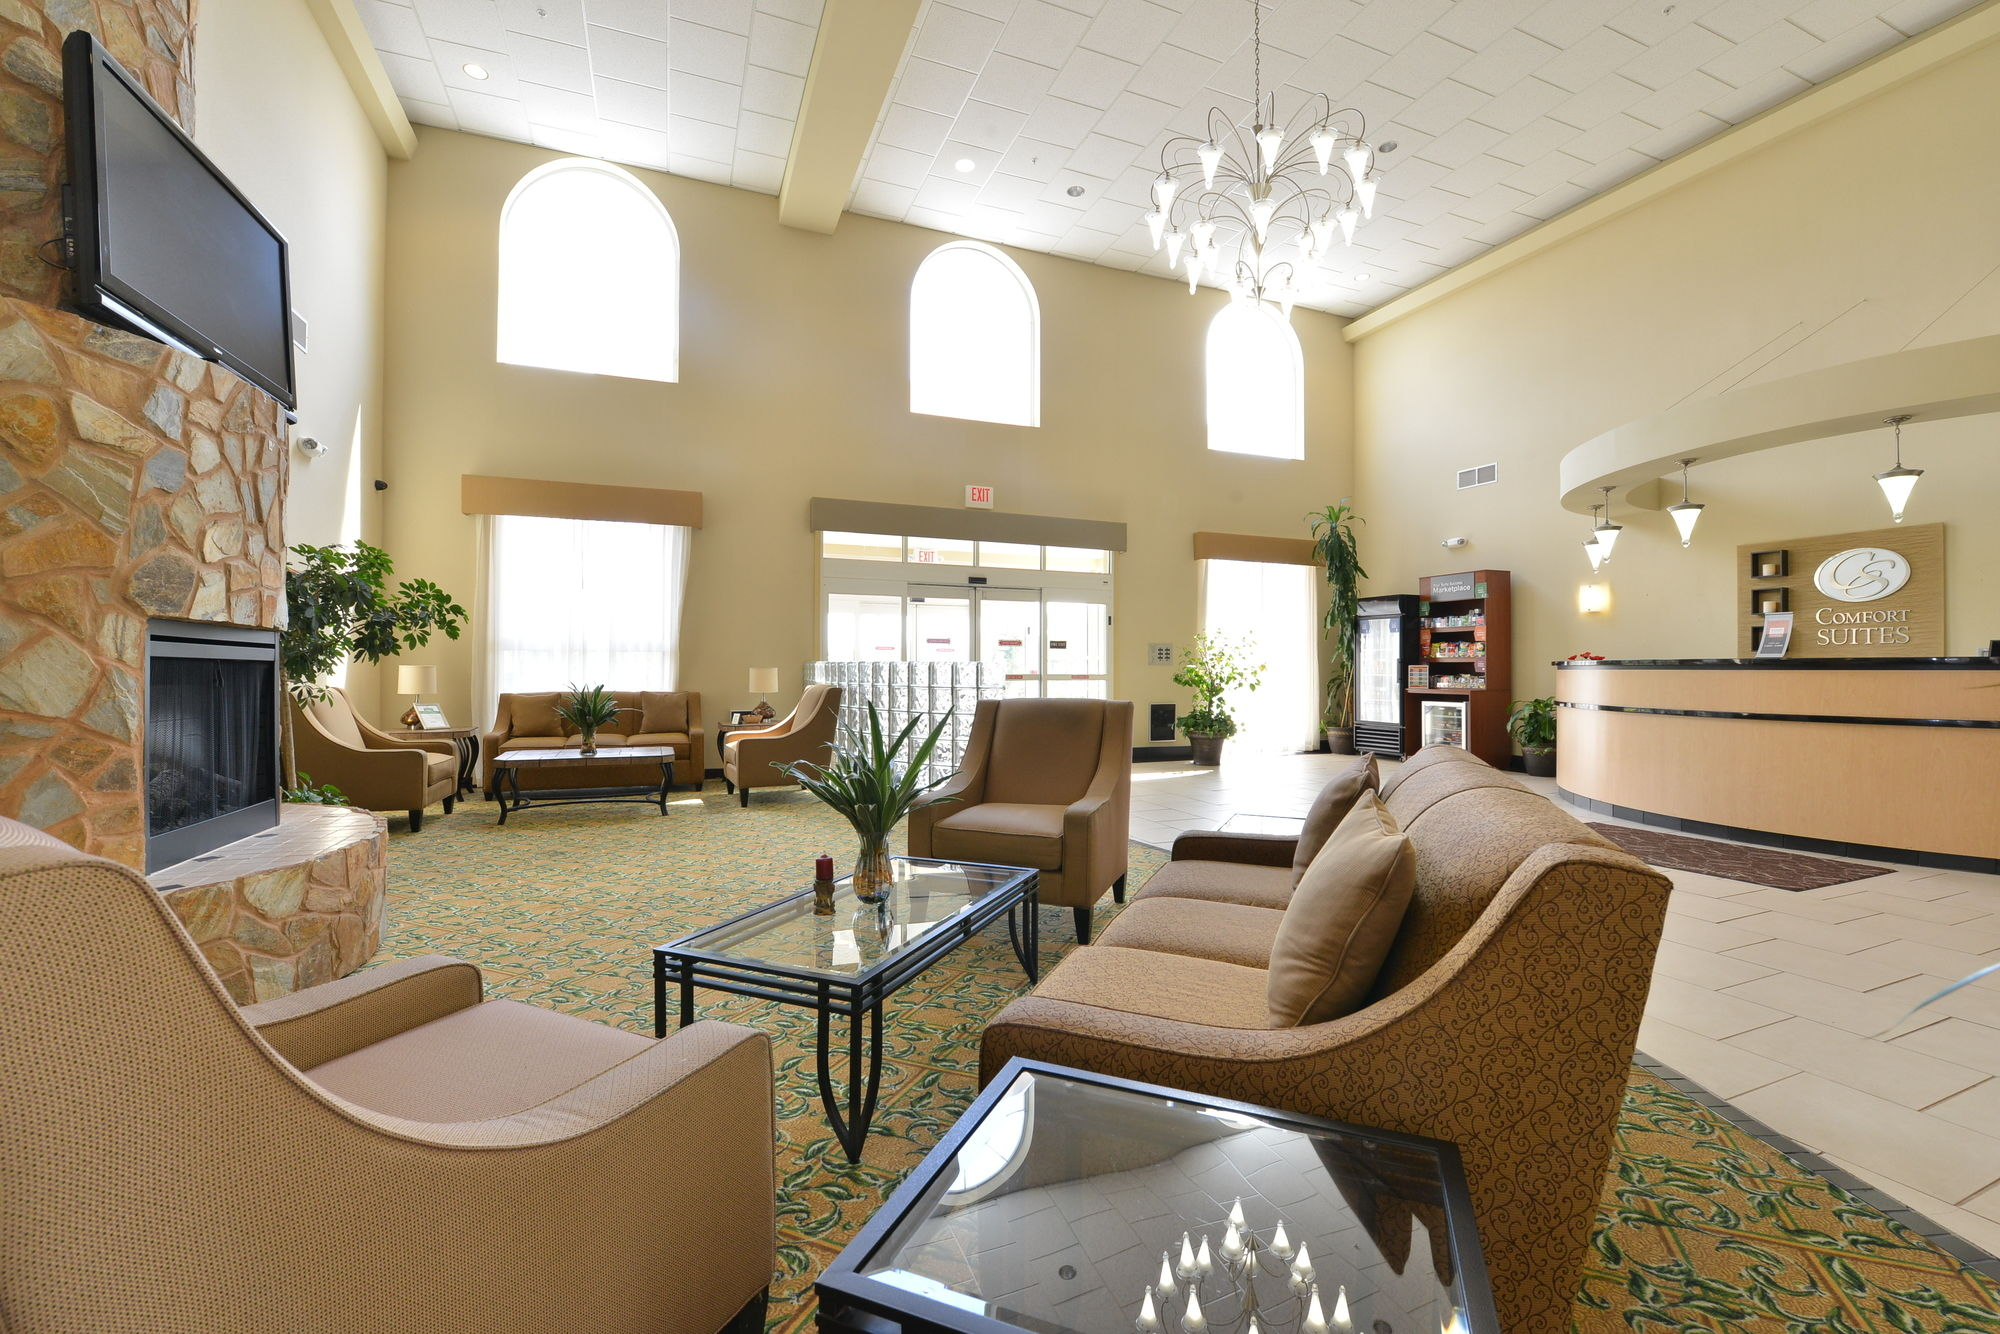 Discount Coupon for Comfort Suites Near Gettysburg Battlefield Visitor Center in Gettysburg